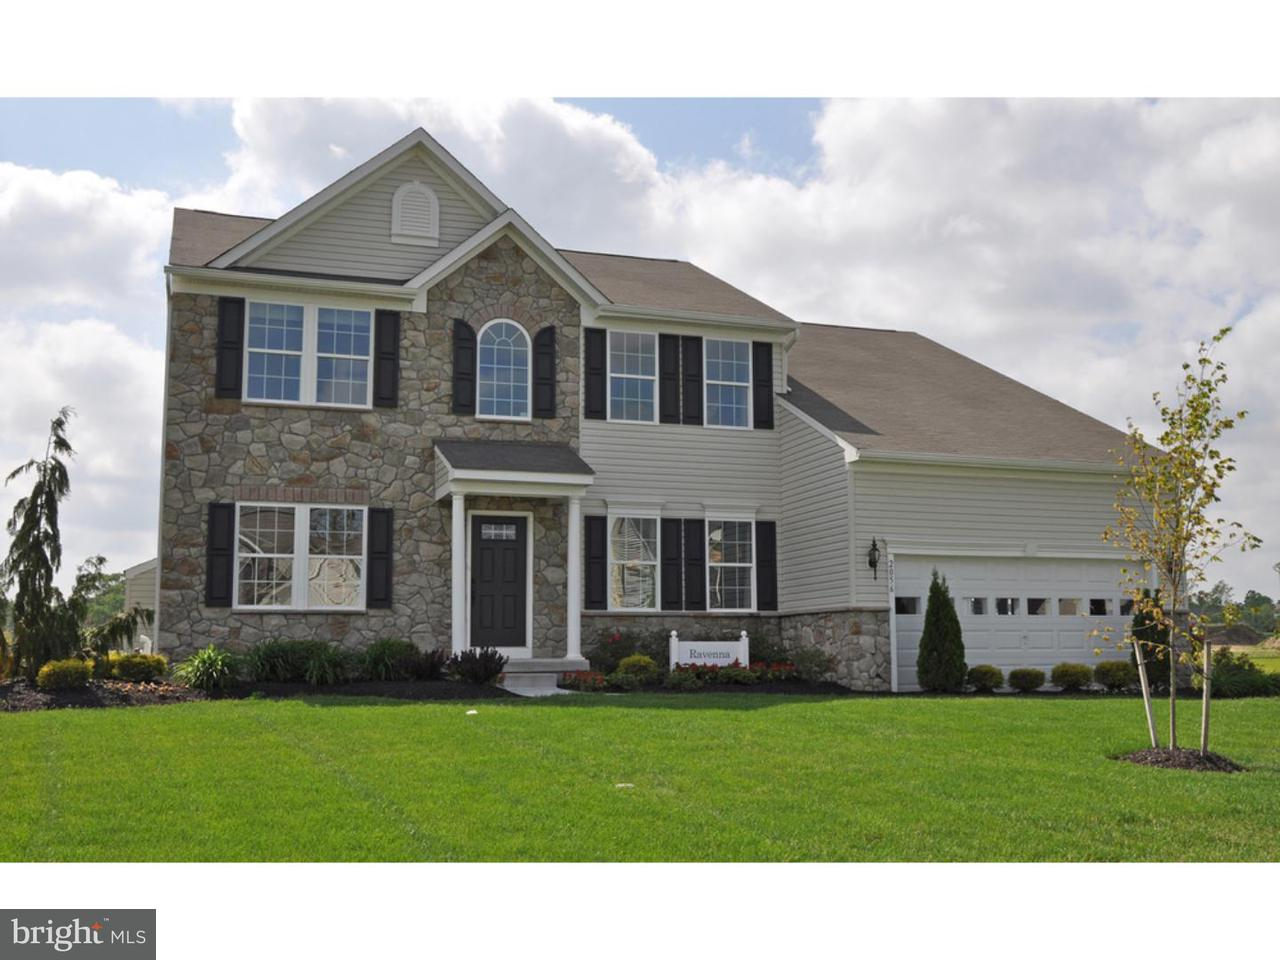 Single Family Home for Sale at 2 EAST CROSSING Drive Mount Royal, New Jersey 08061 United States